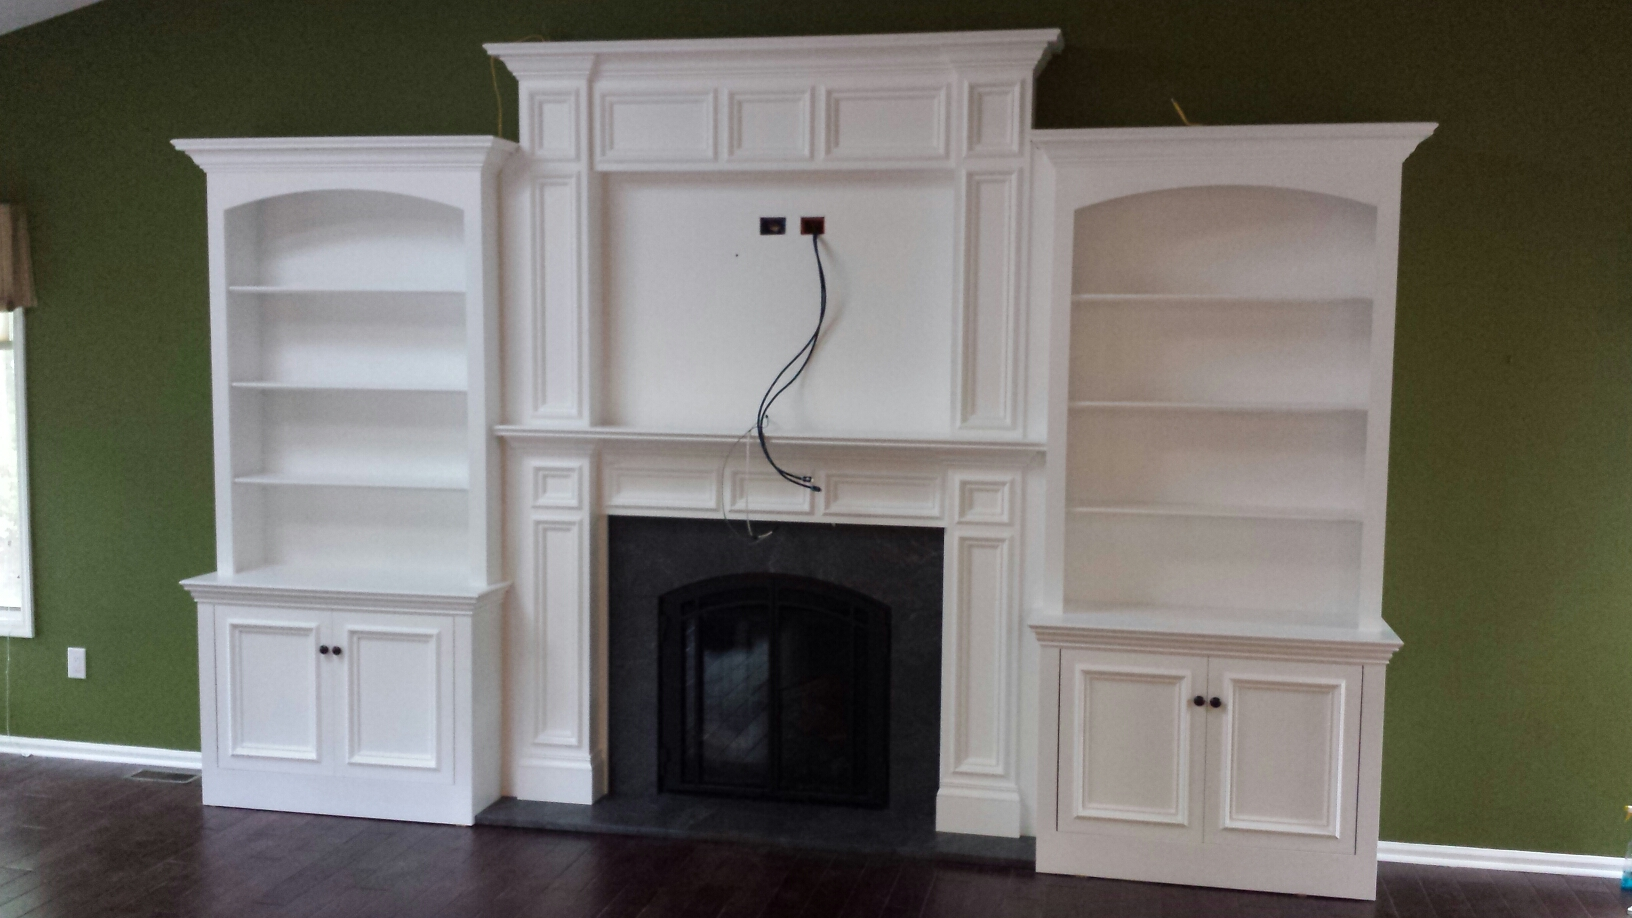 Gas Fireplace w/ custom Woodwork Built-in's